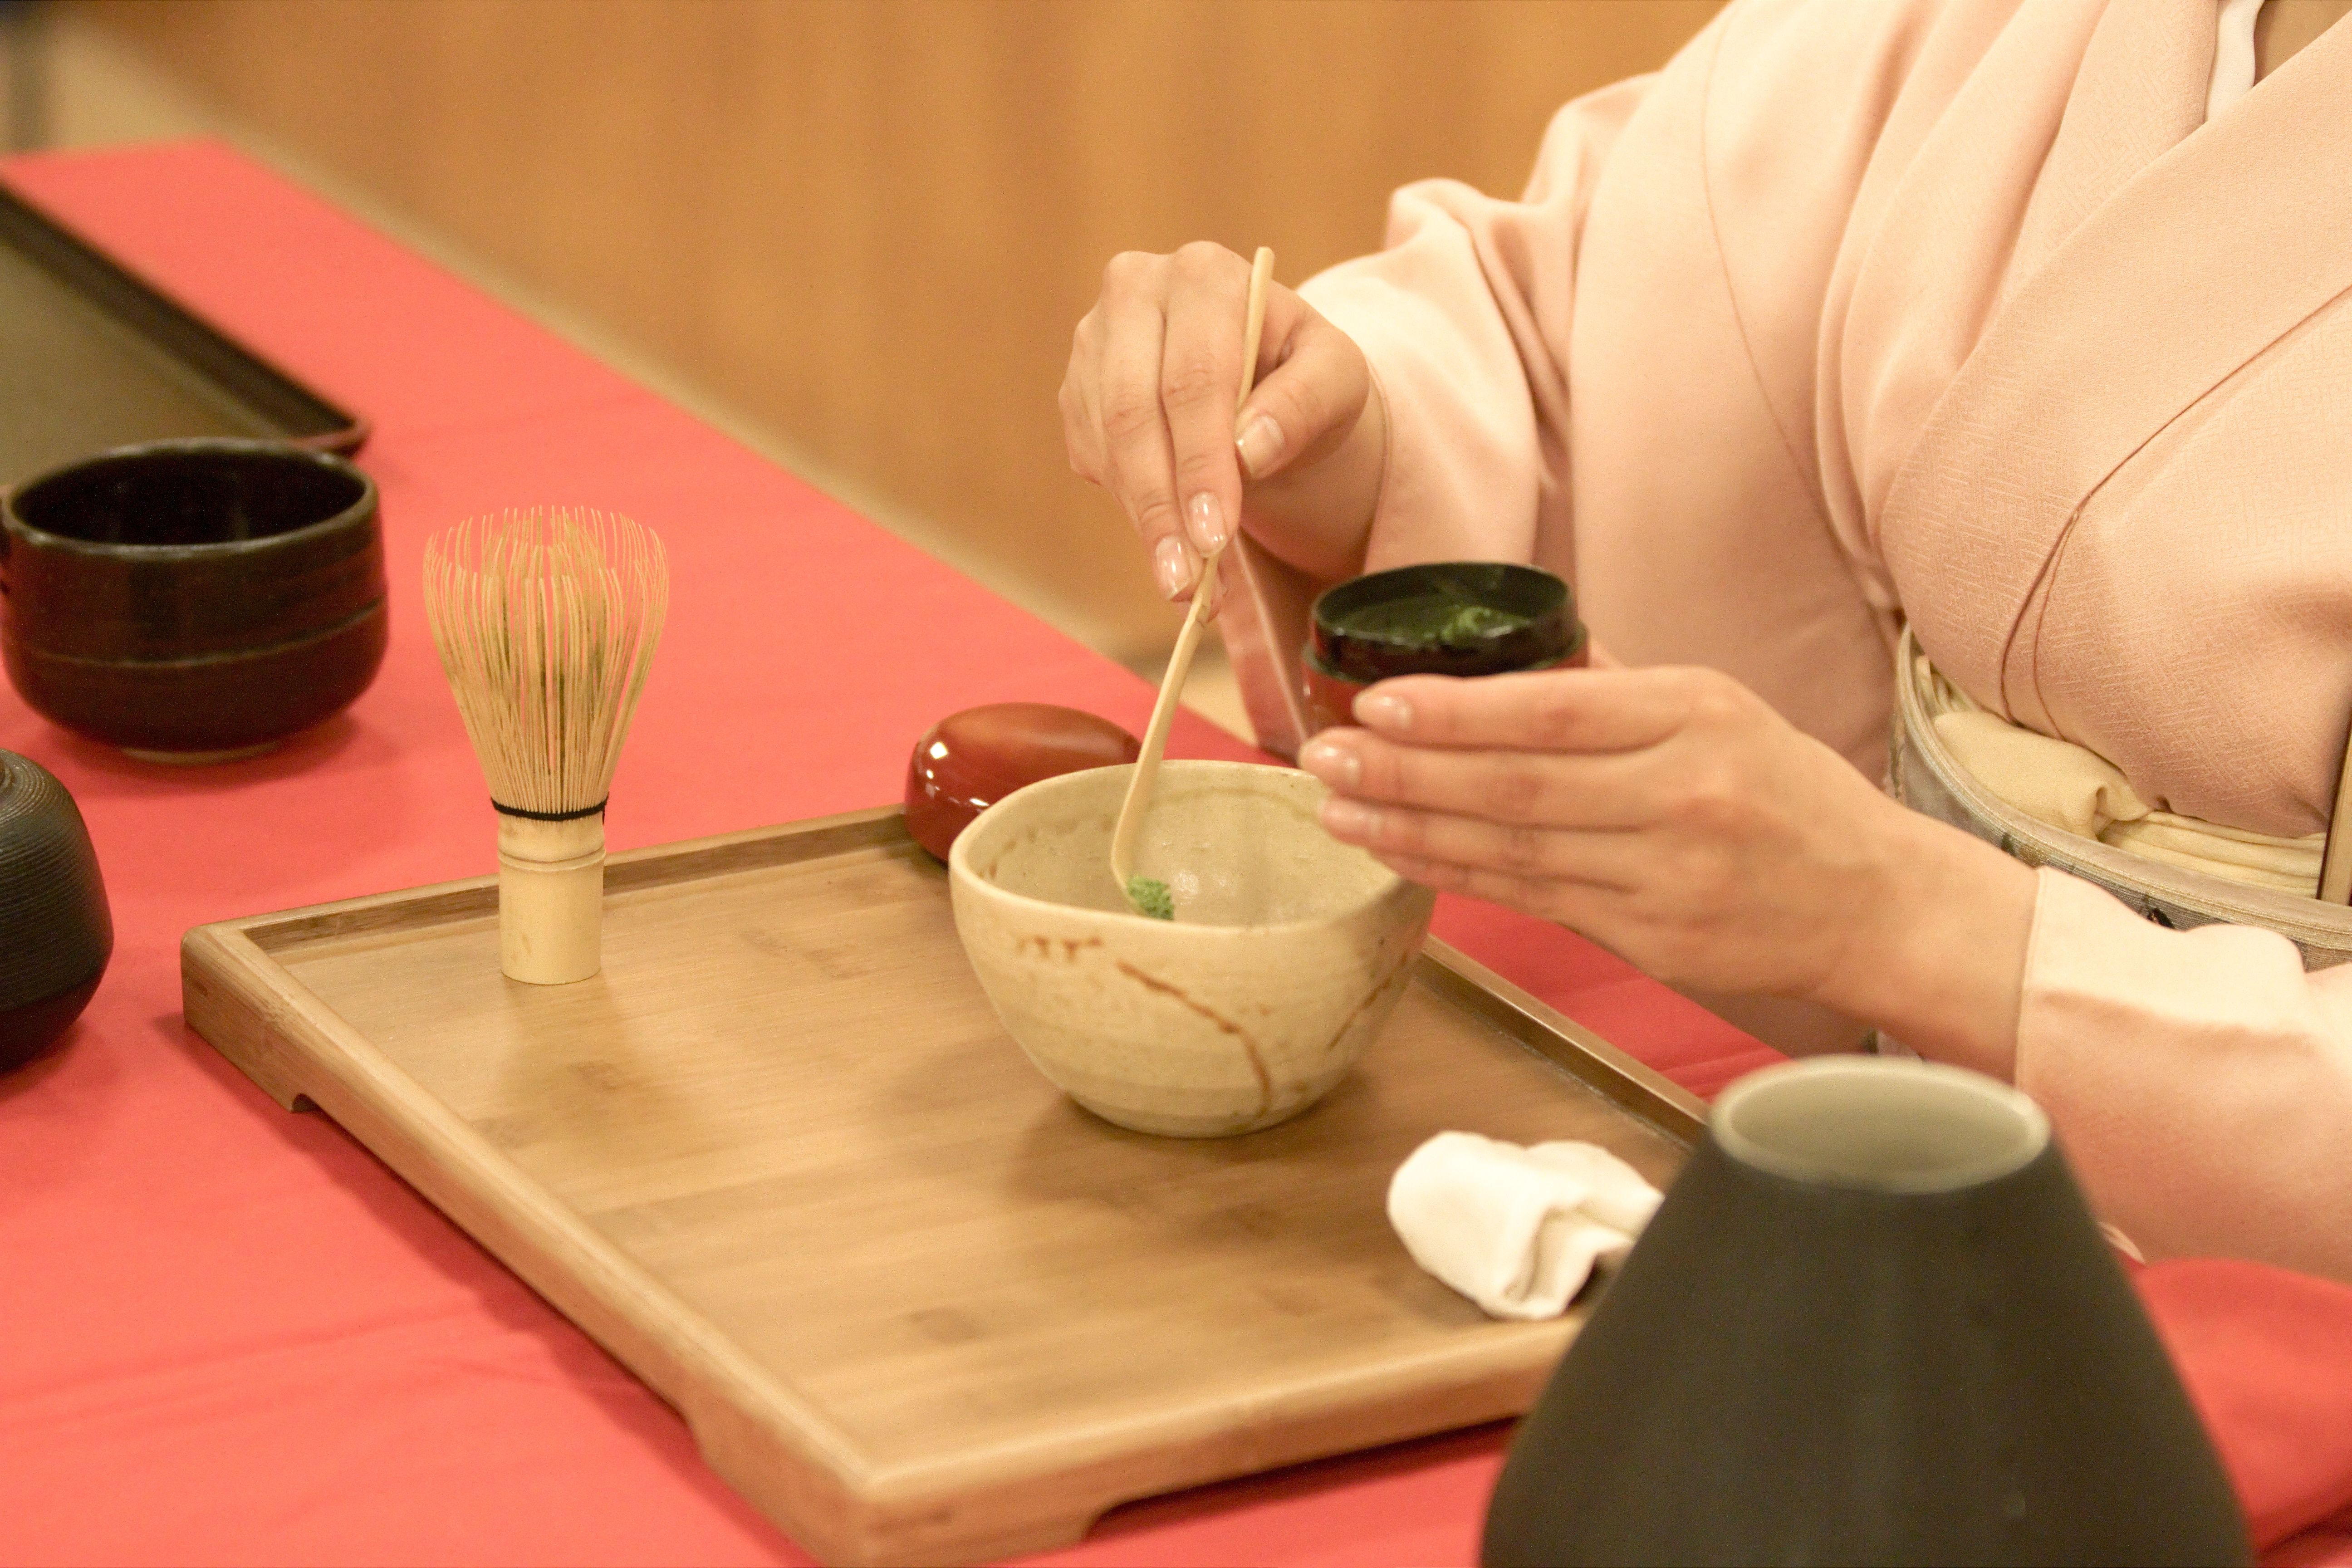 japanese tea ceremony As featured on presented at the hotel okura in tokyo.